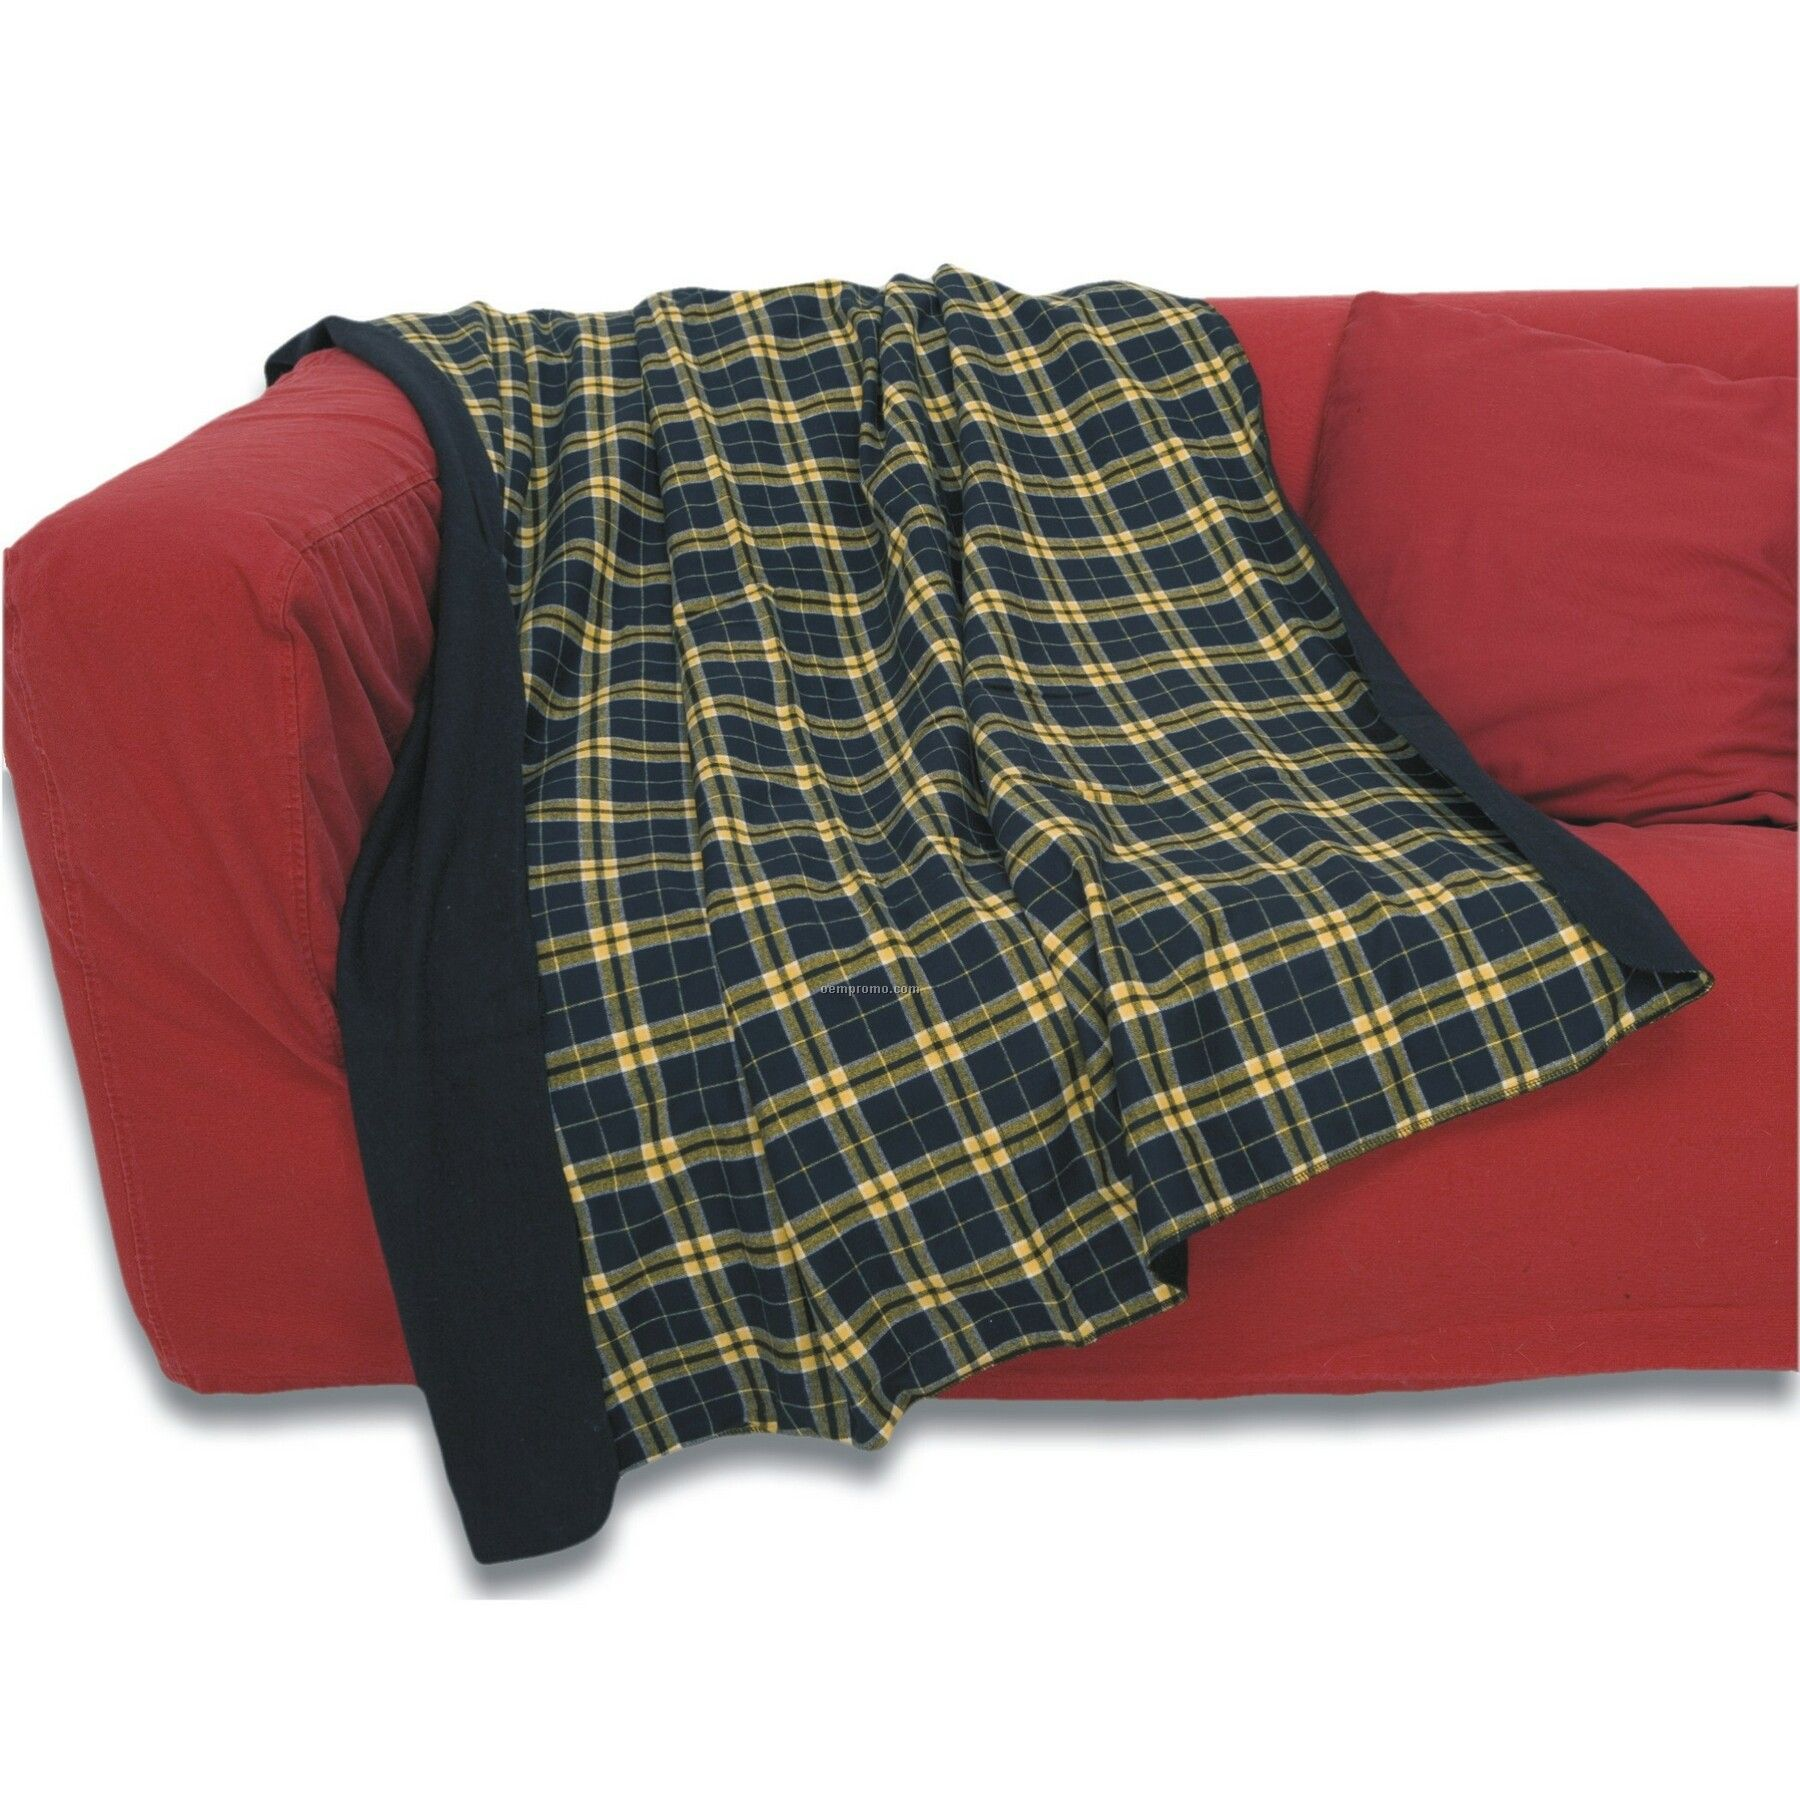 Find the best selection ofFind the best selection oftartan blanketshere at Dhgate.com. Source cheap and high quality products in hundreds of categoriesFind the best selection ofFind the best selection oftartan blanketshere at Dhgate.com. Source cheap and high quality products in hundreds of categorieswholesaledirect from China.